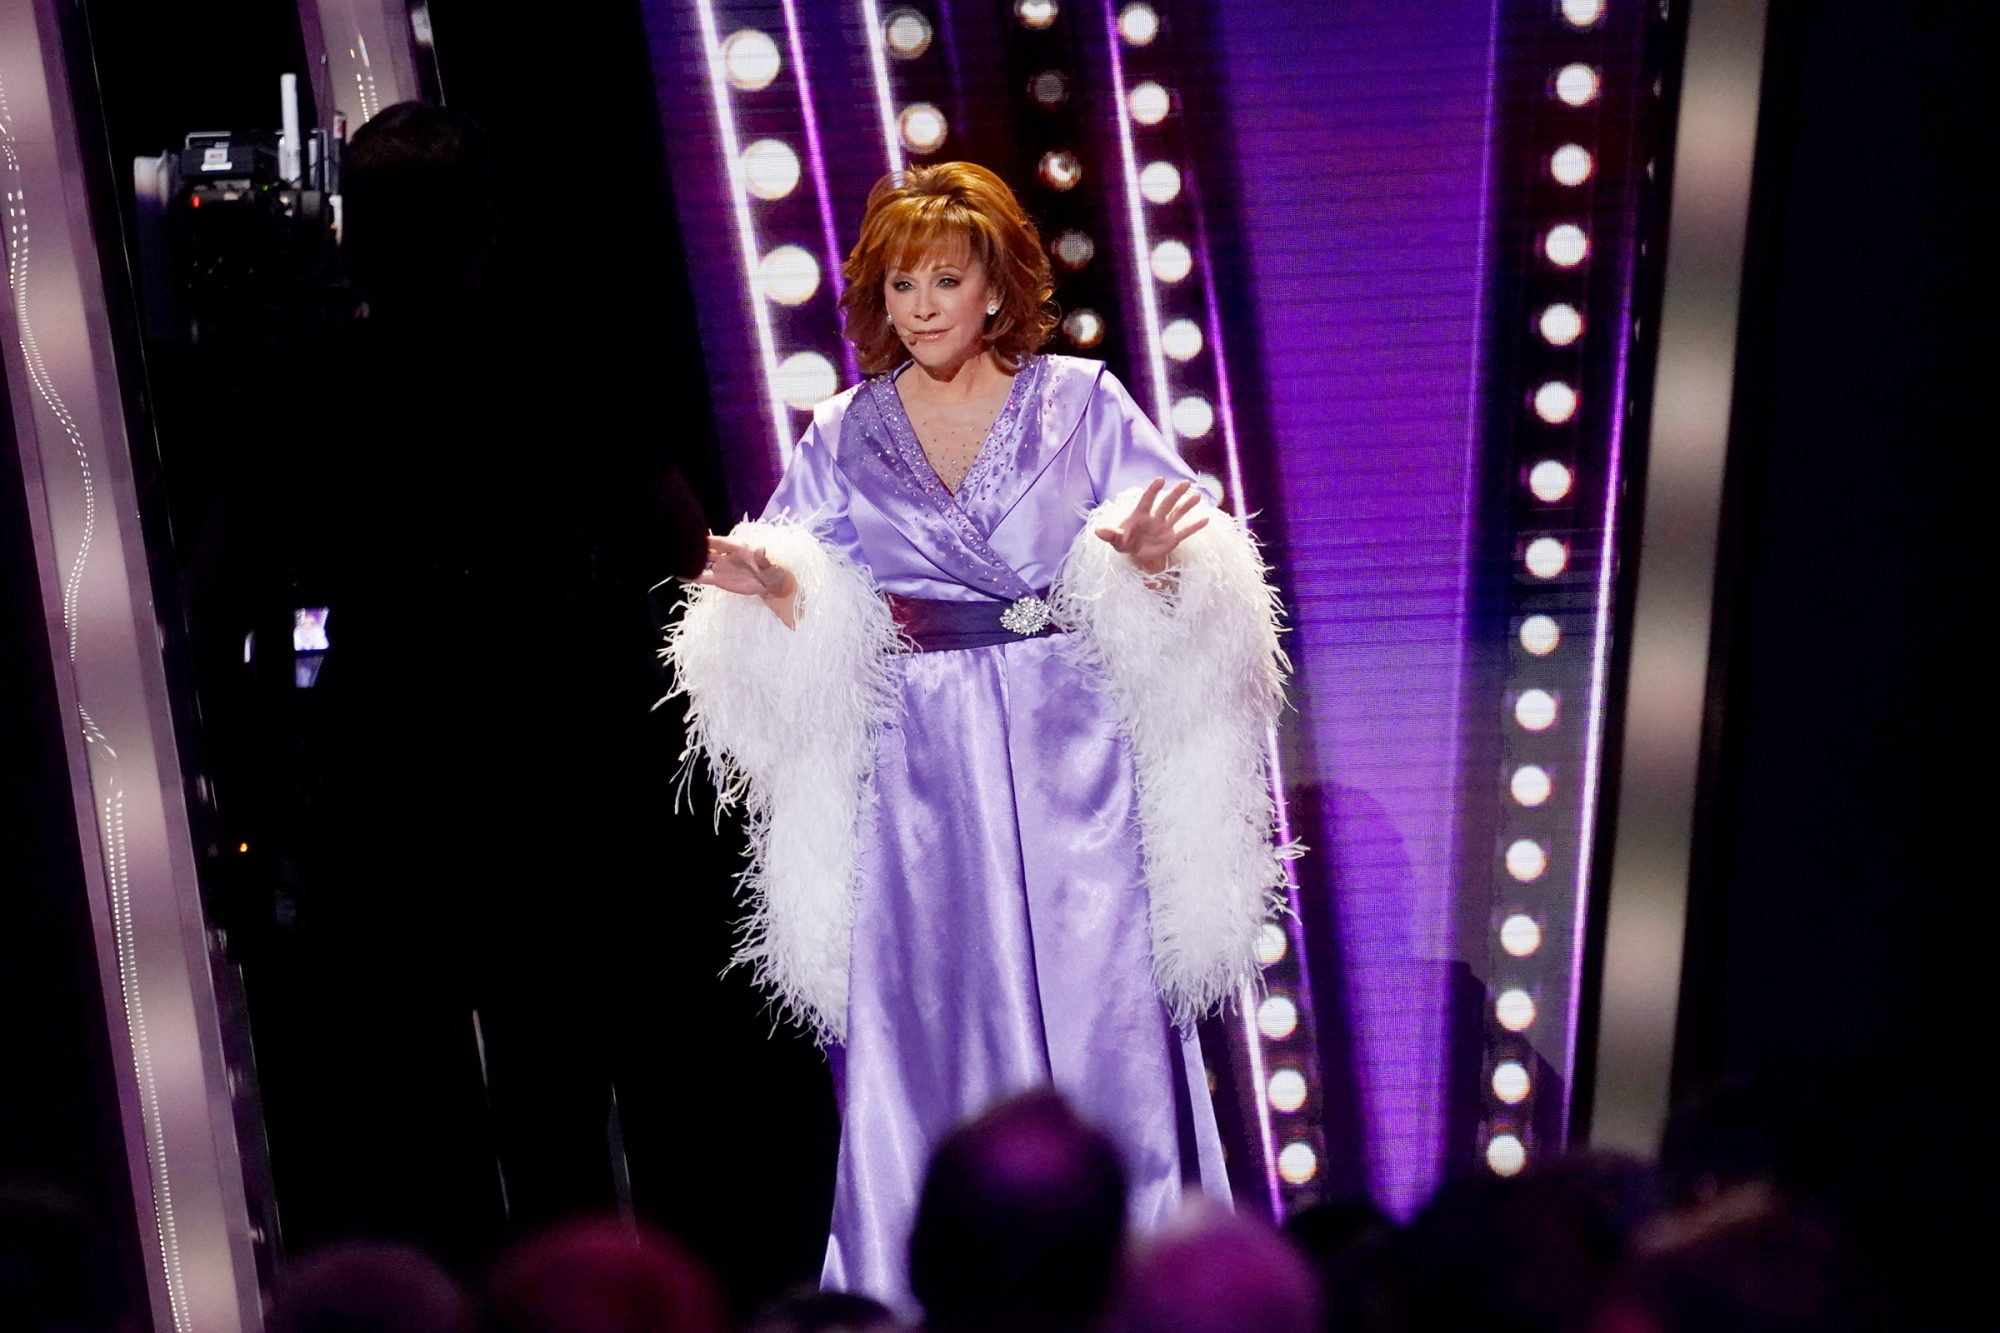 Reba McEntire performs onstage at the 53rd annual CMA Awards at the Bridgestone Arena on November 13, 2019 in Nashville, Tennessee